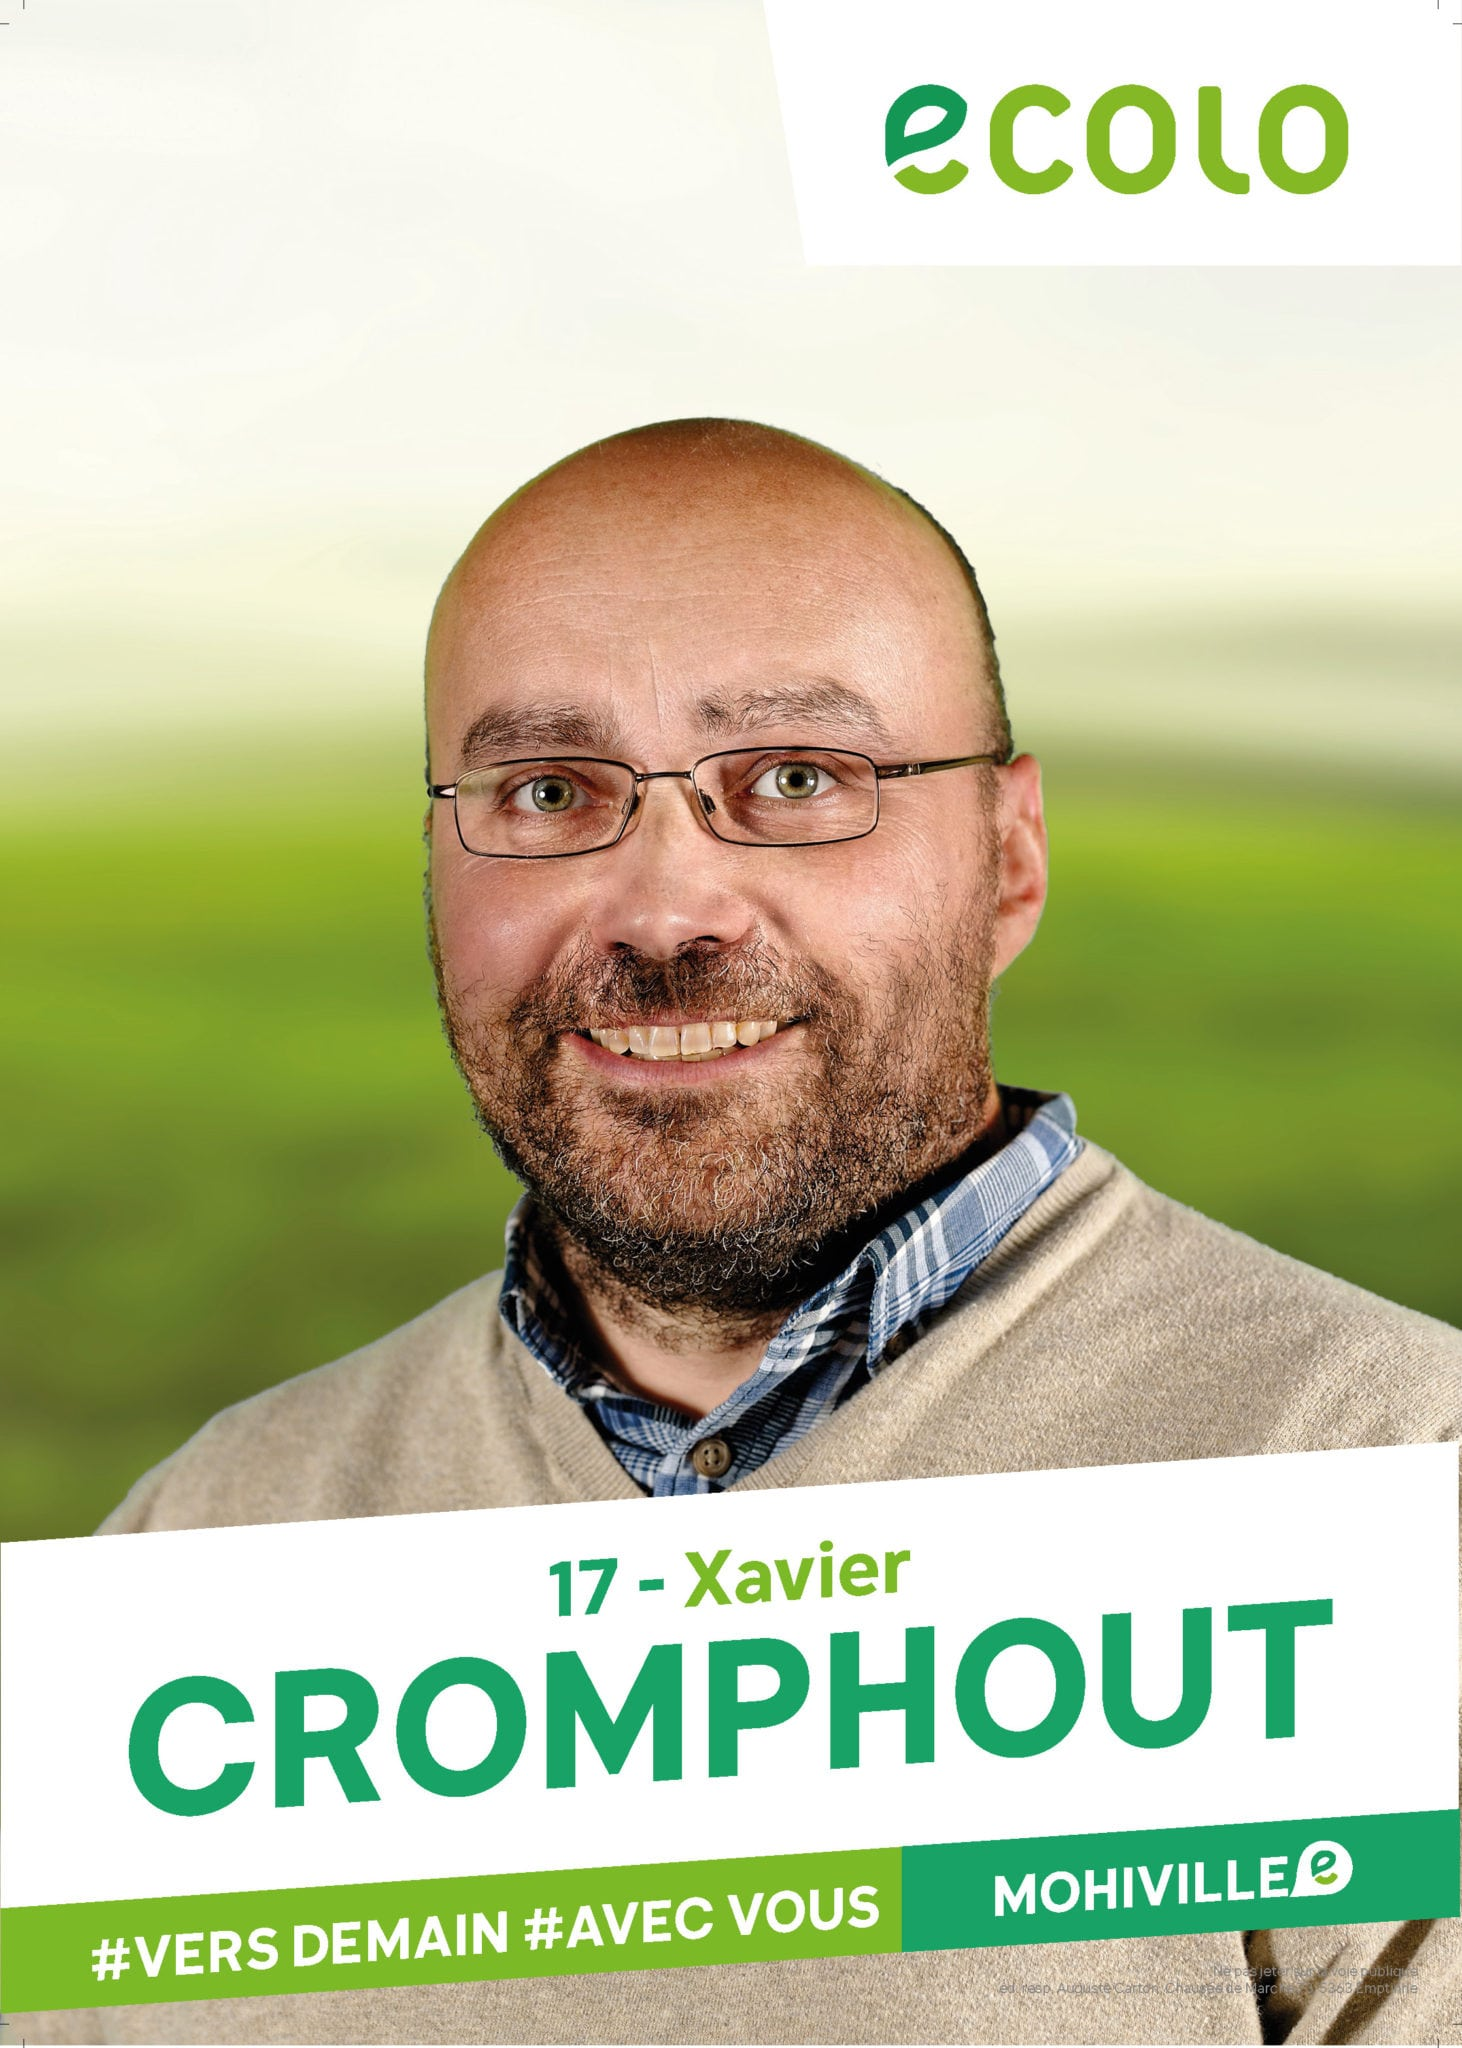 17 - Xavier CROMPHOUT